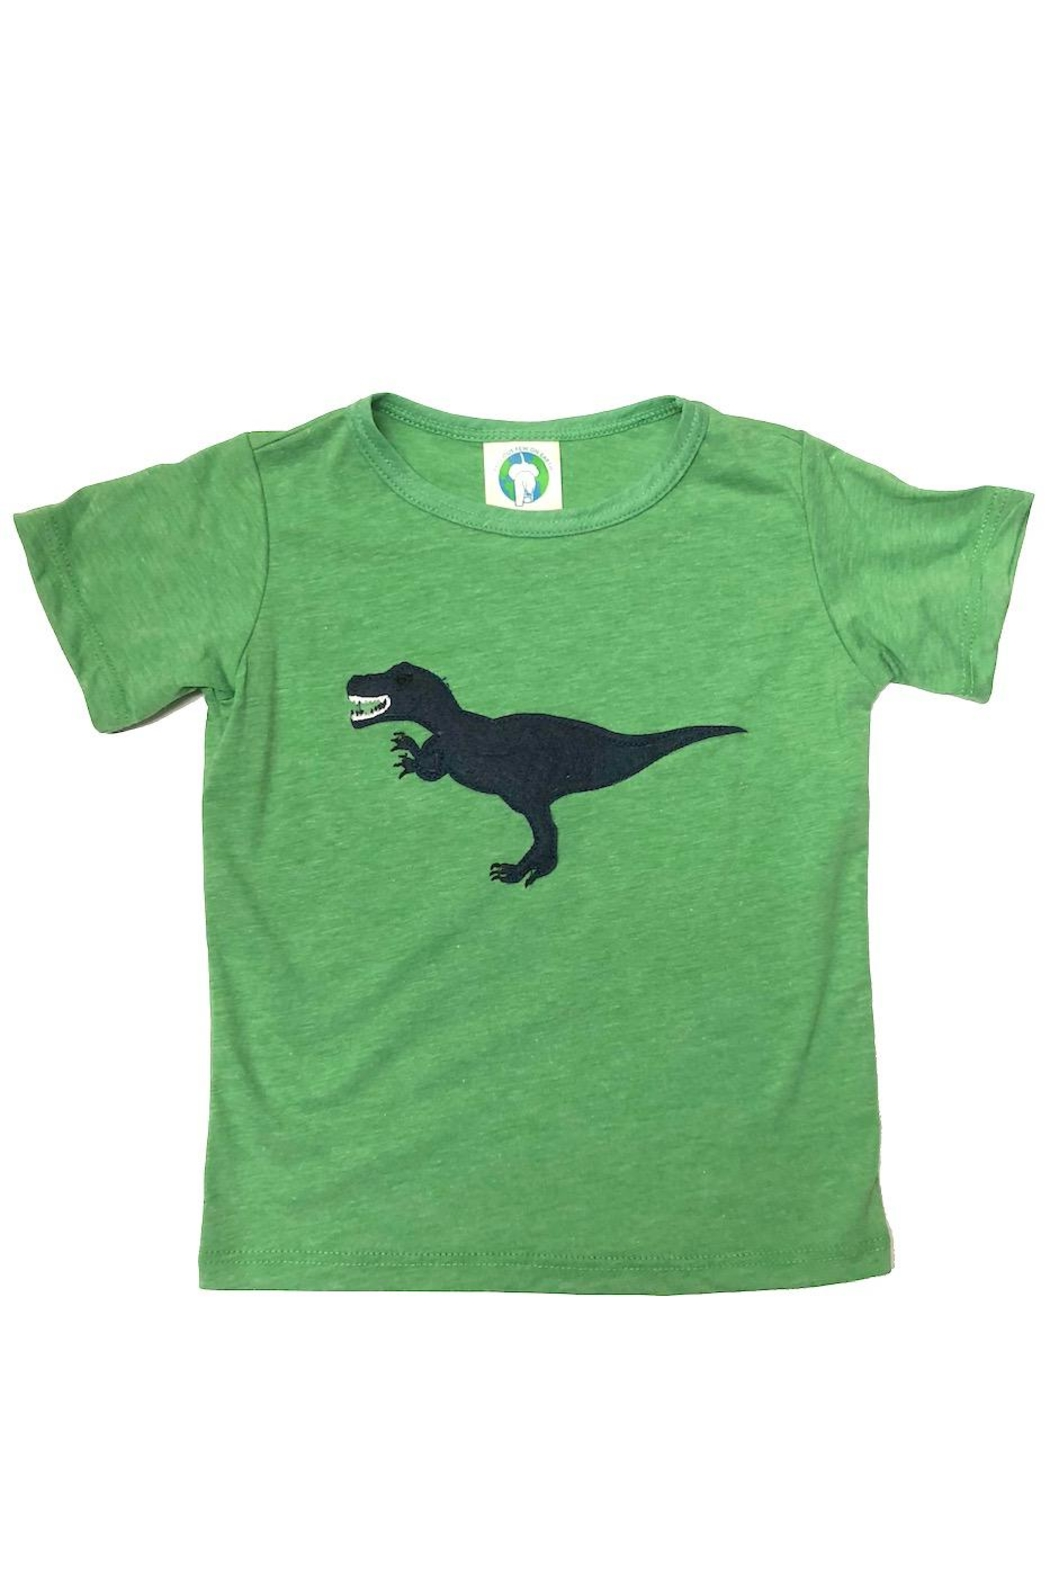 Precious Few on Earth Green T-Rex T-Shirt - Main Image